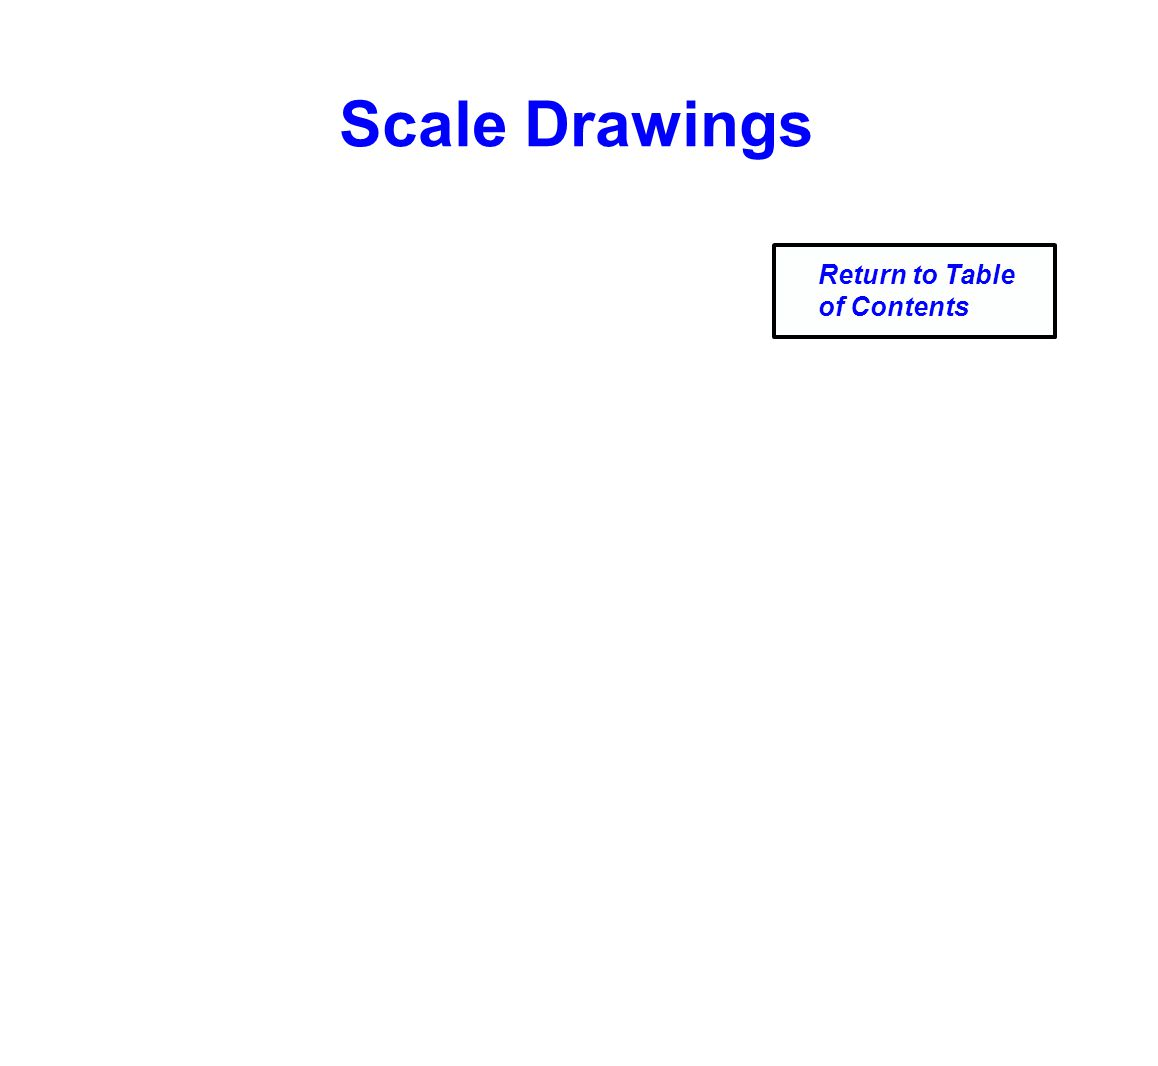 Scale Drawings Return to Table of Contents